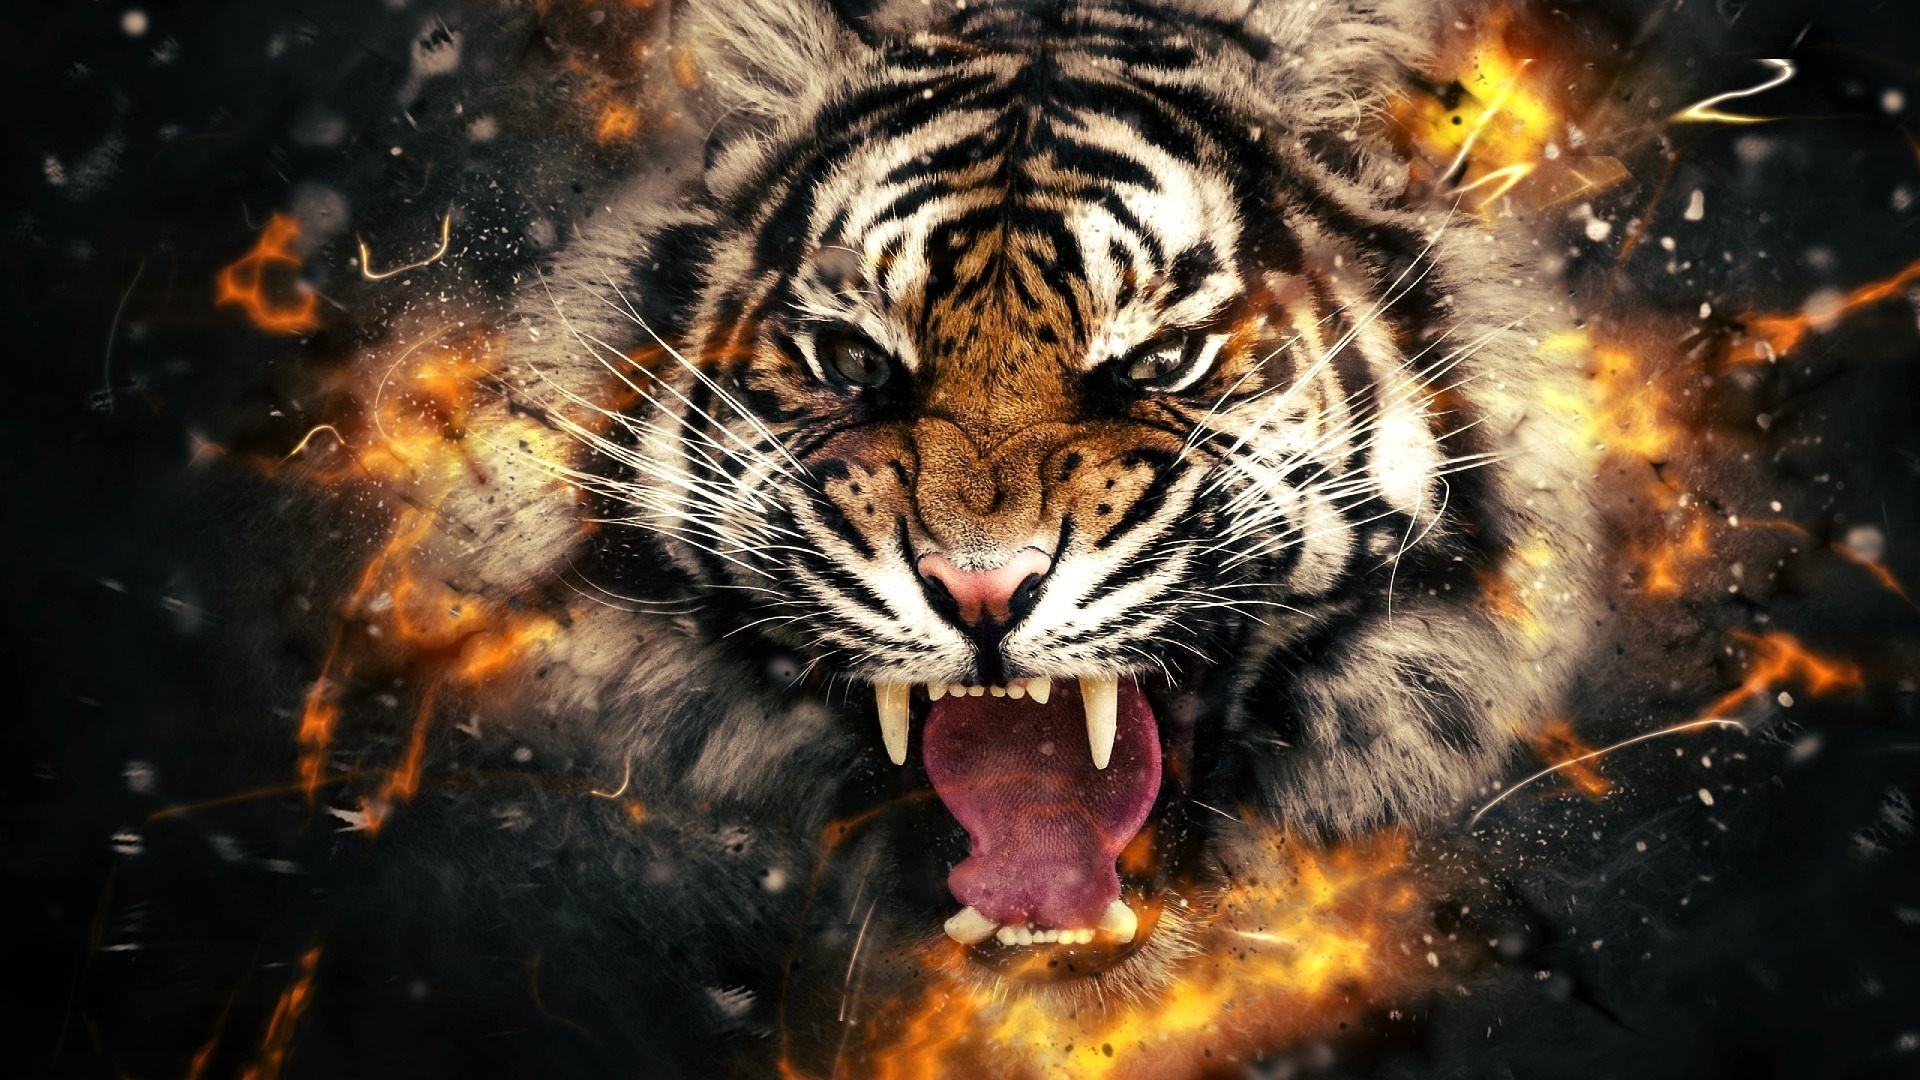 3D 4k Tiger Wallpaper